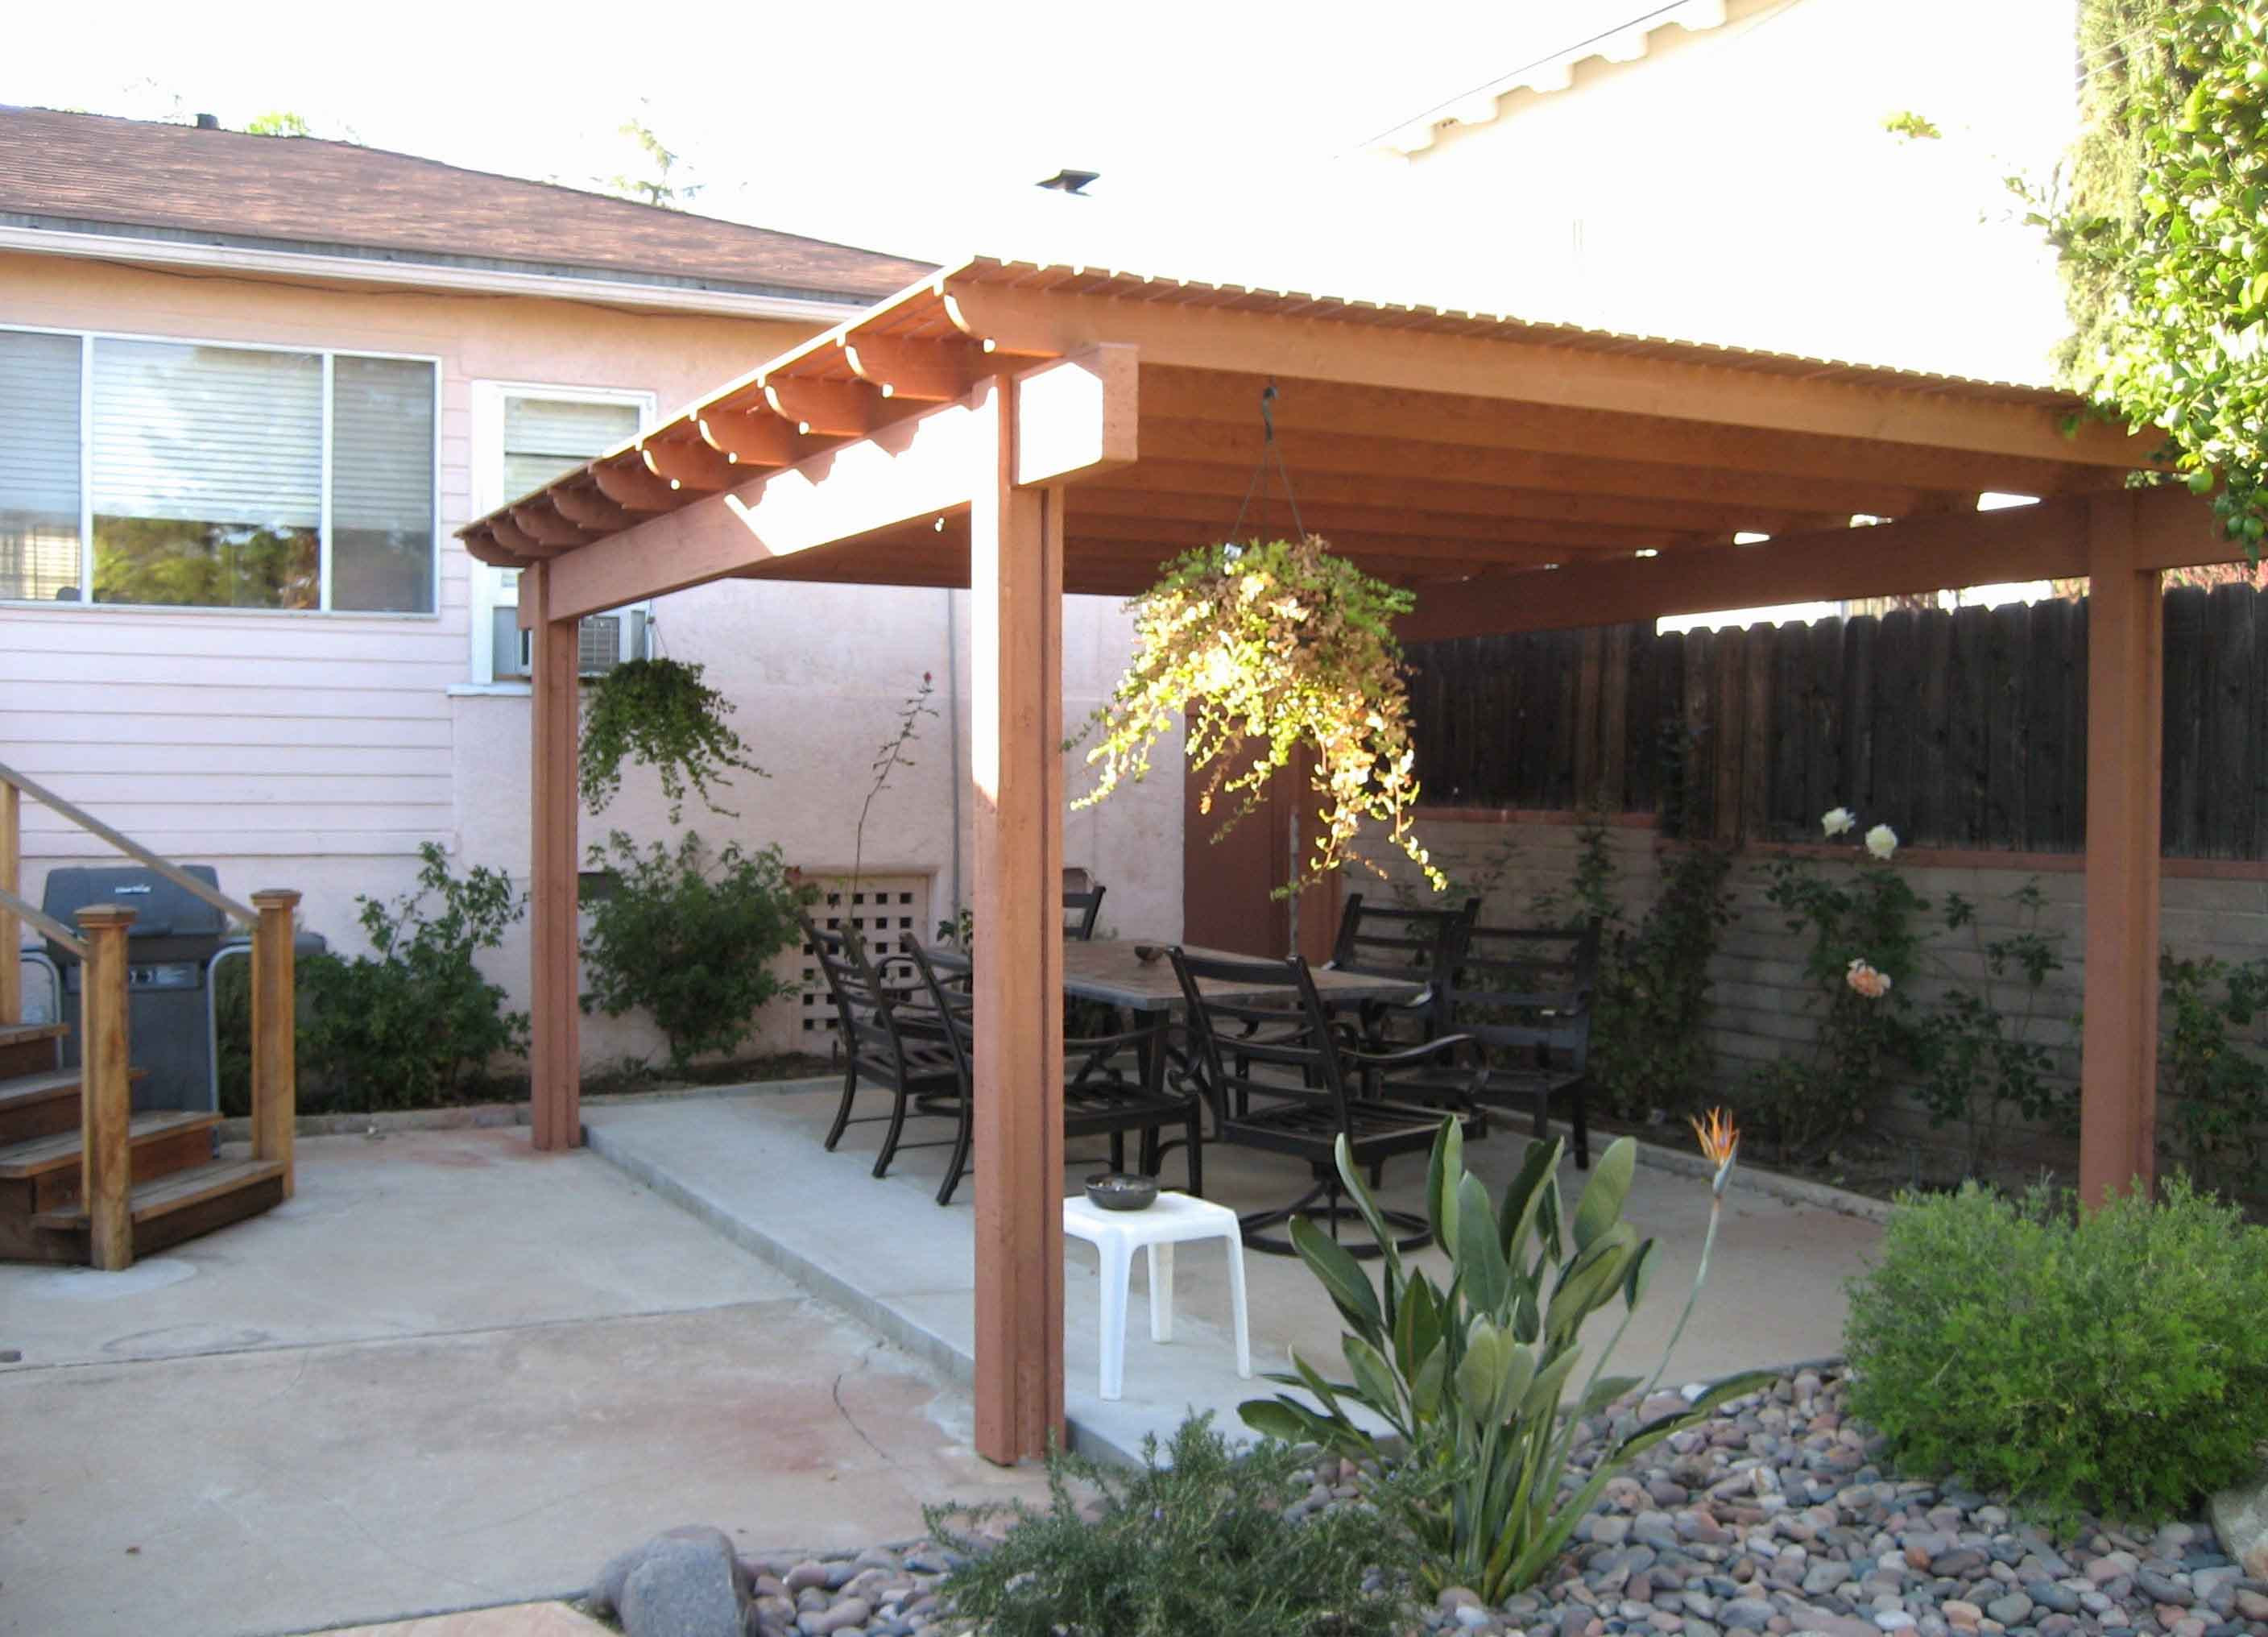 Best ideas about Free Standing Patio Cover . Save or Pin How to Build A Freestanding Patio Cover with Best 10 Now.